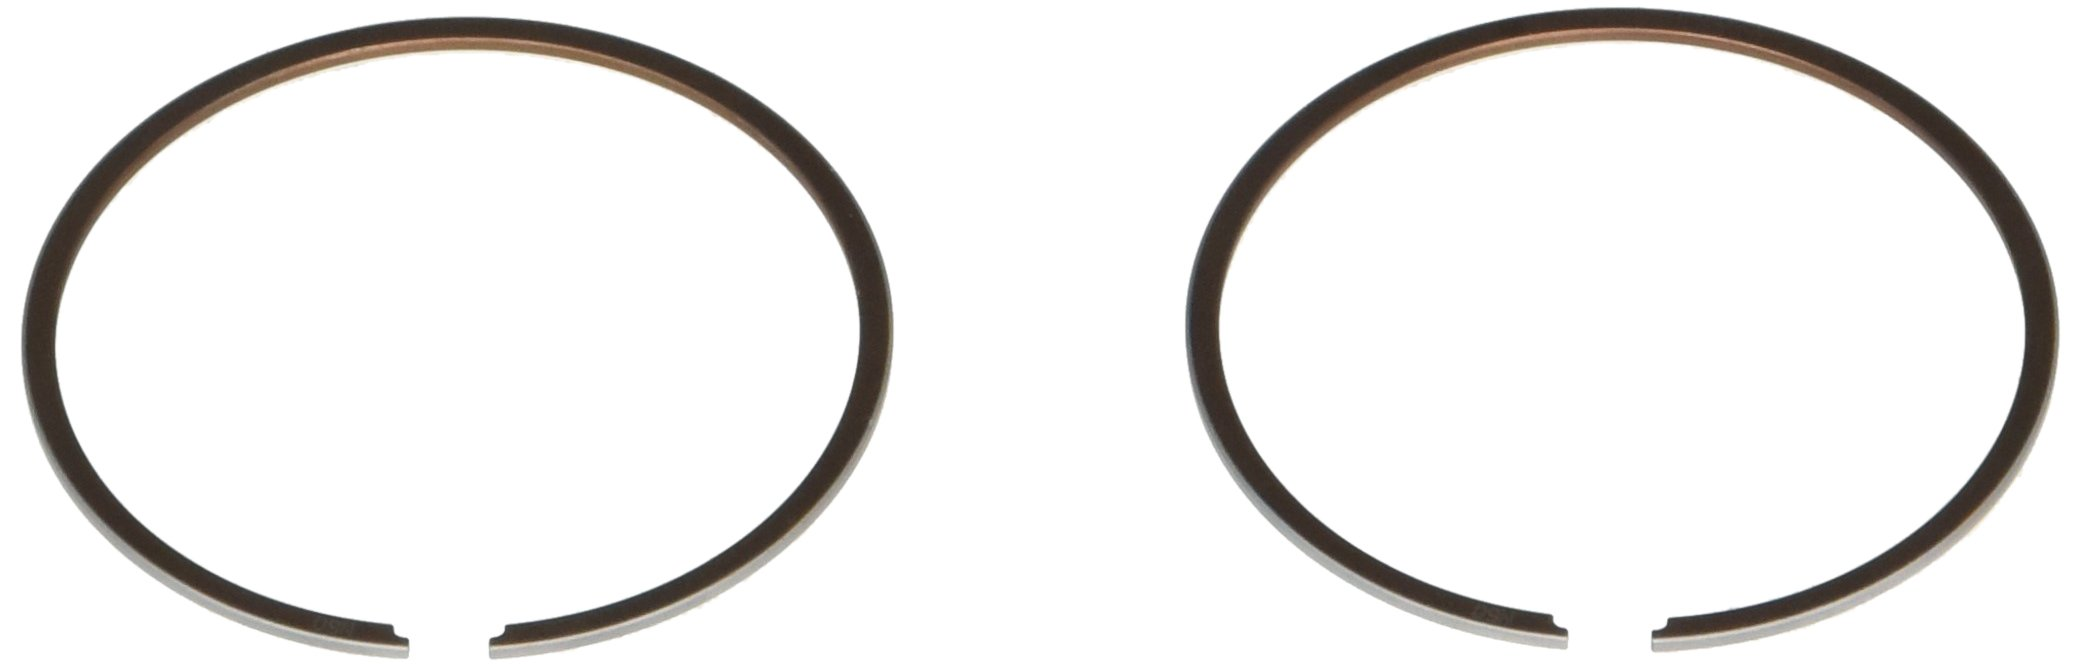 Wiseco 1752CD Ring Set for 44.50mm Cylinder Bore